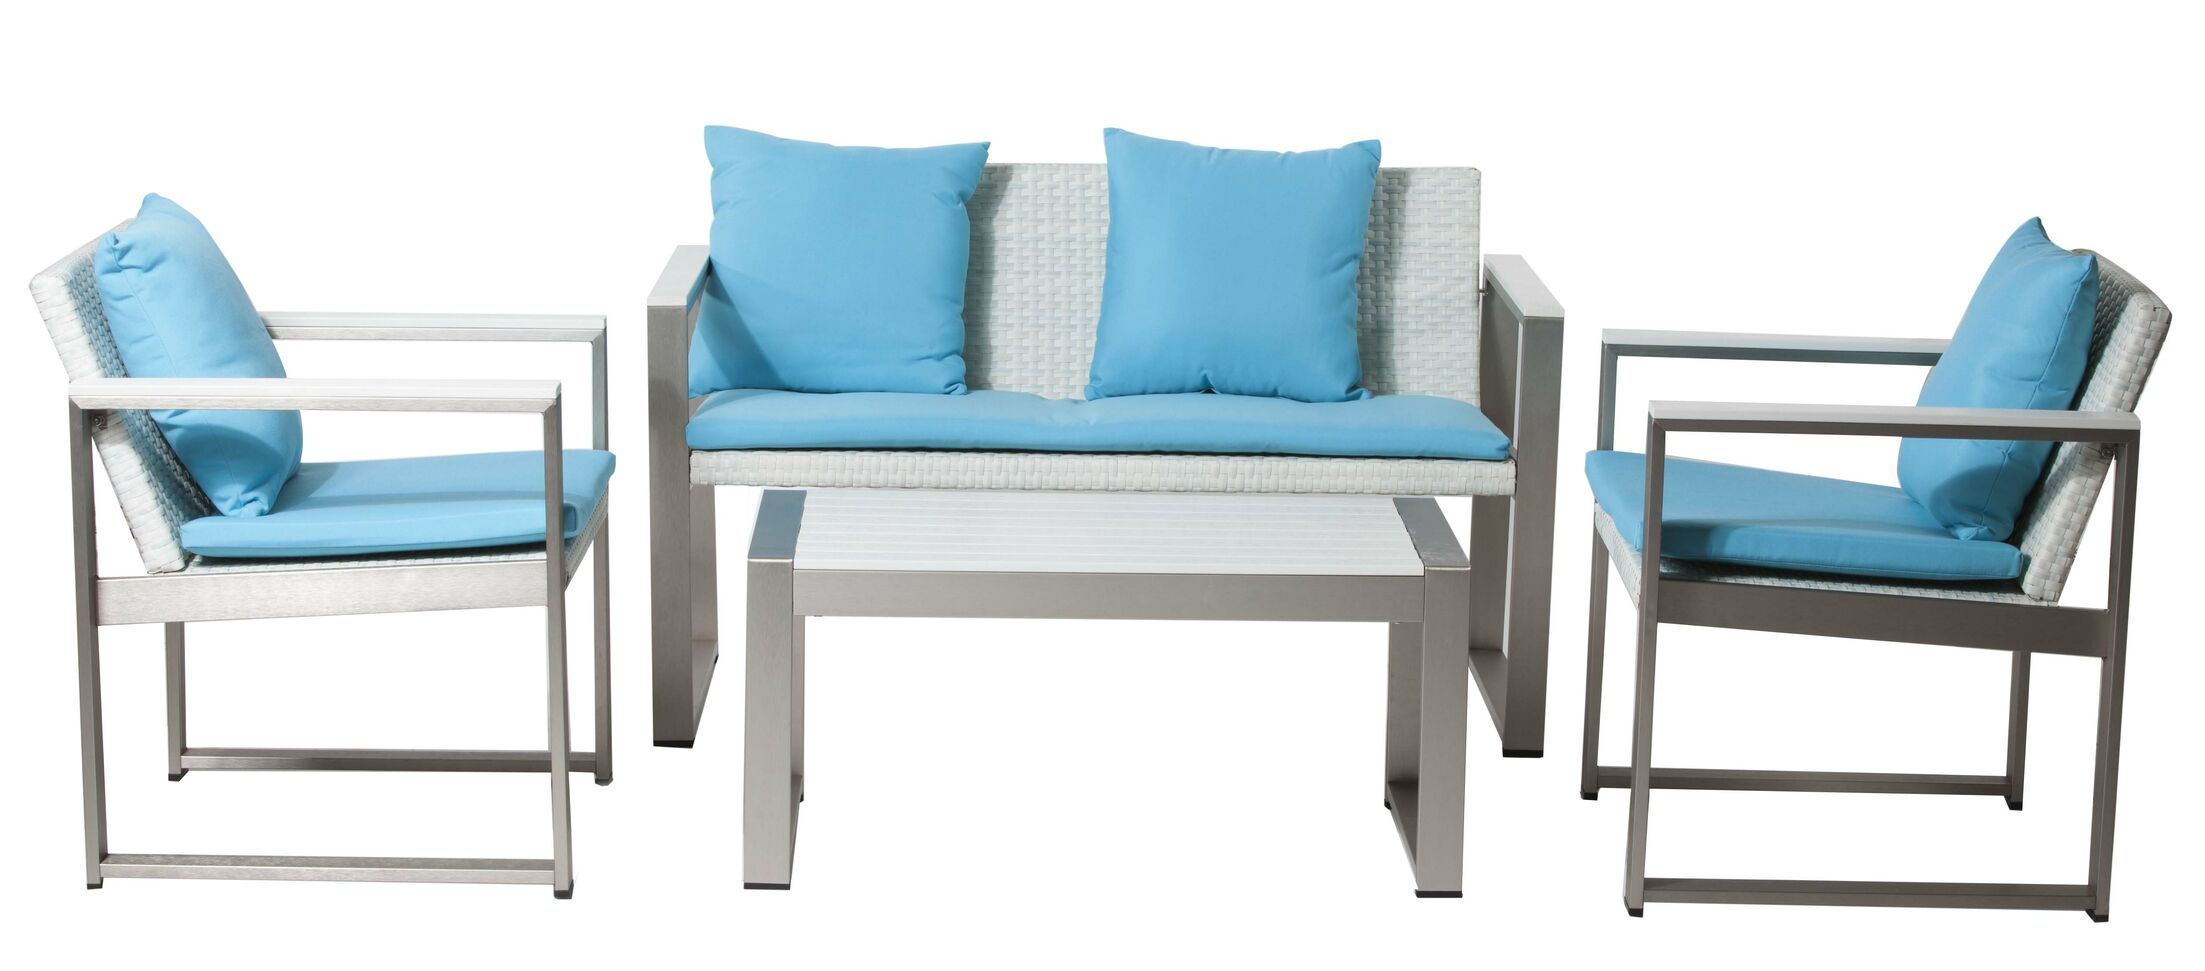 Carrell 17 Piece Rattan Conversation Set with Cushion Color: White, Fabric: Turquoise